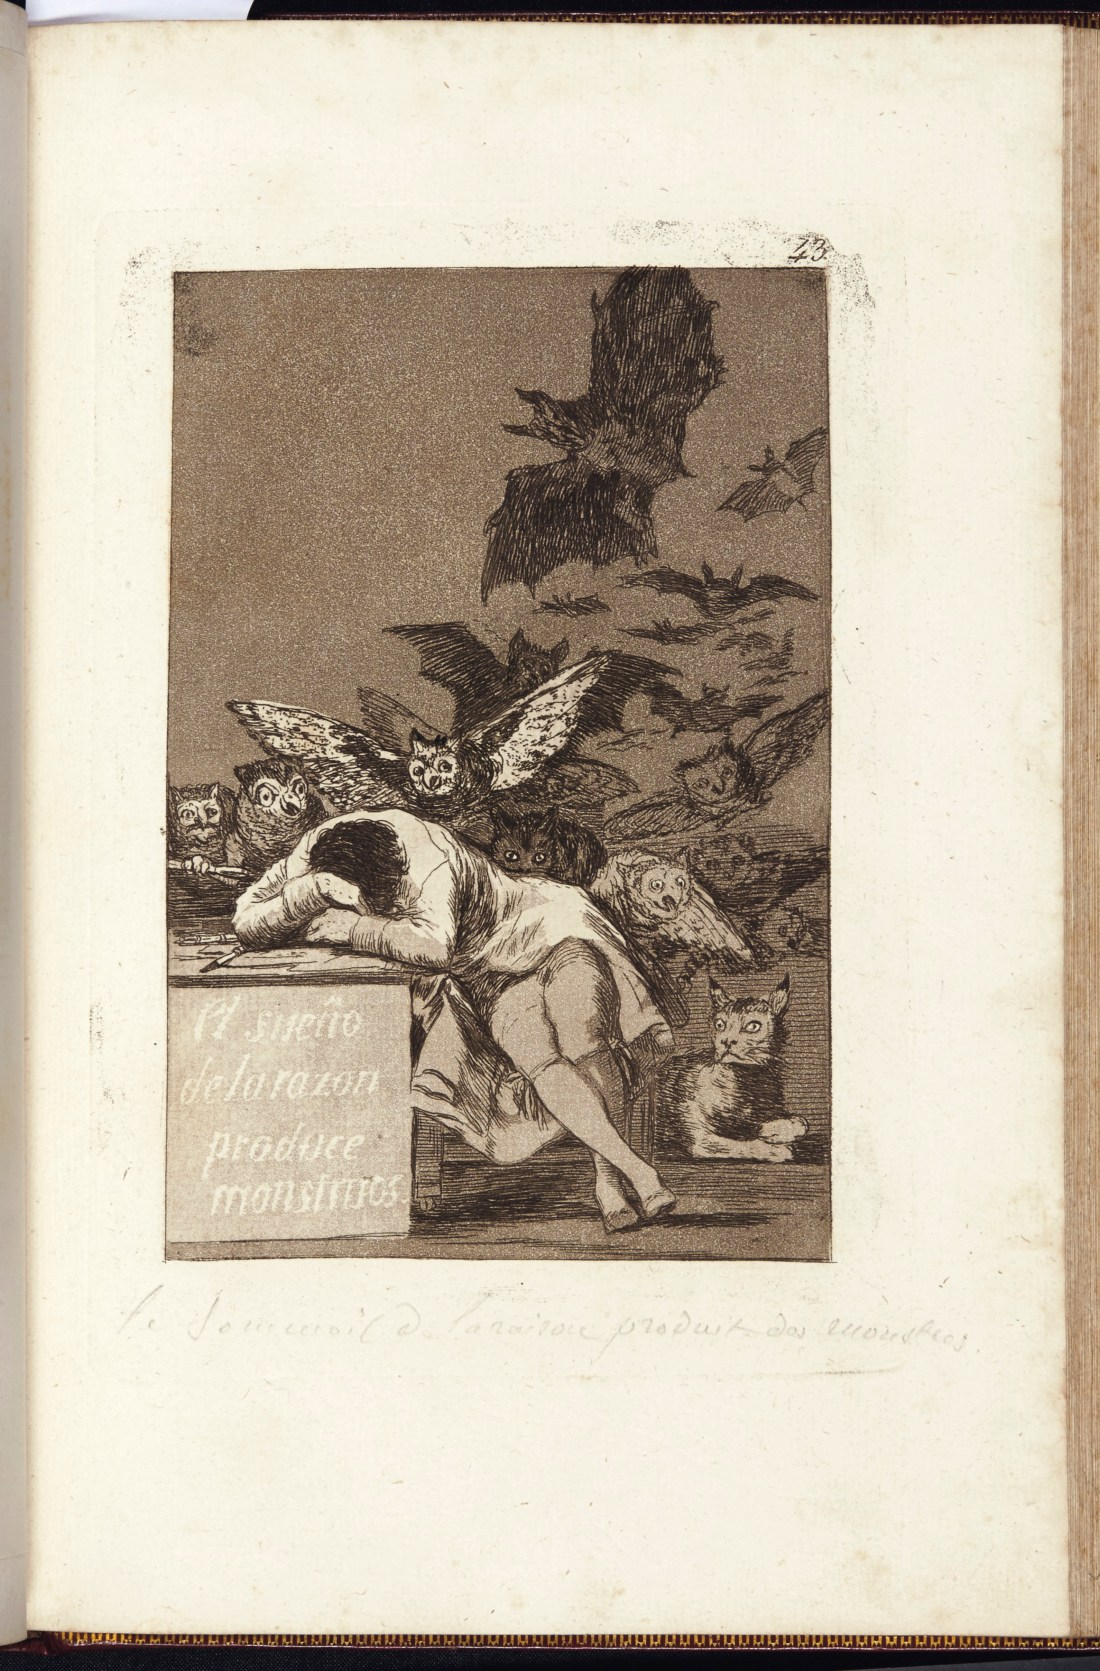 A presentation copy of the first edition of Francisco Goya's Los Caprichos, from 1799. Specifically, you see plate 43--what might be its most famous image--The Sleep of Reason Produces Monsters.